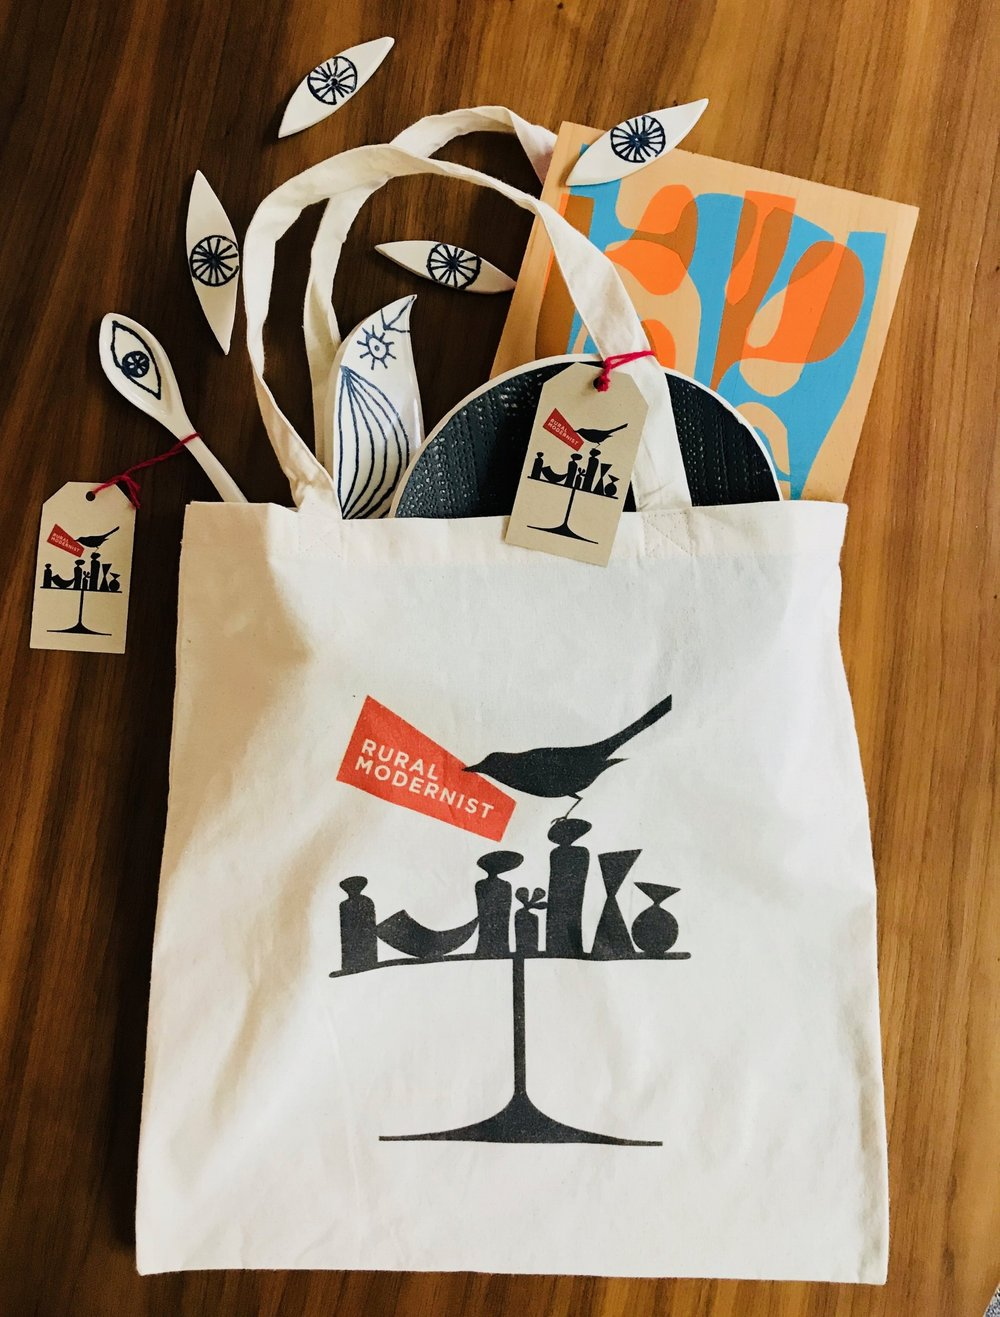 logo tote - If you don't feel like wrapping a gift, use a TOTE-ally charming cotton tote bag emblazoned with the Rural Modernist bird and vase silhouette illustration by Jason O'Malley.